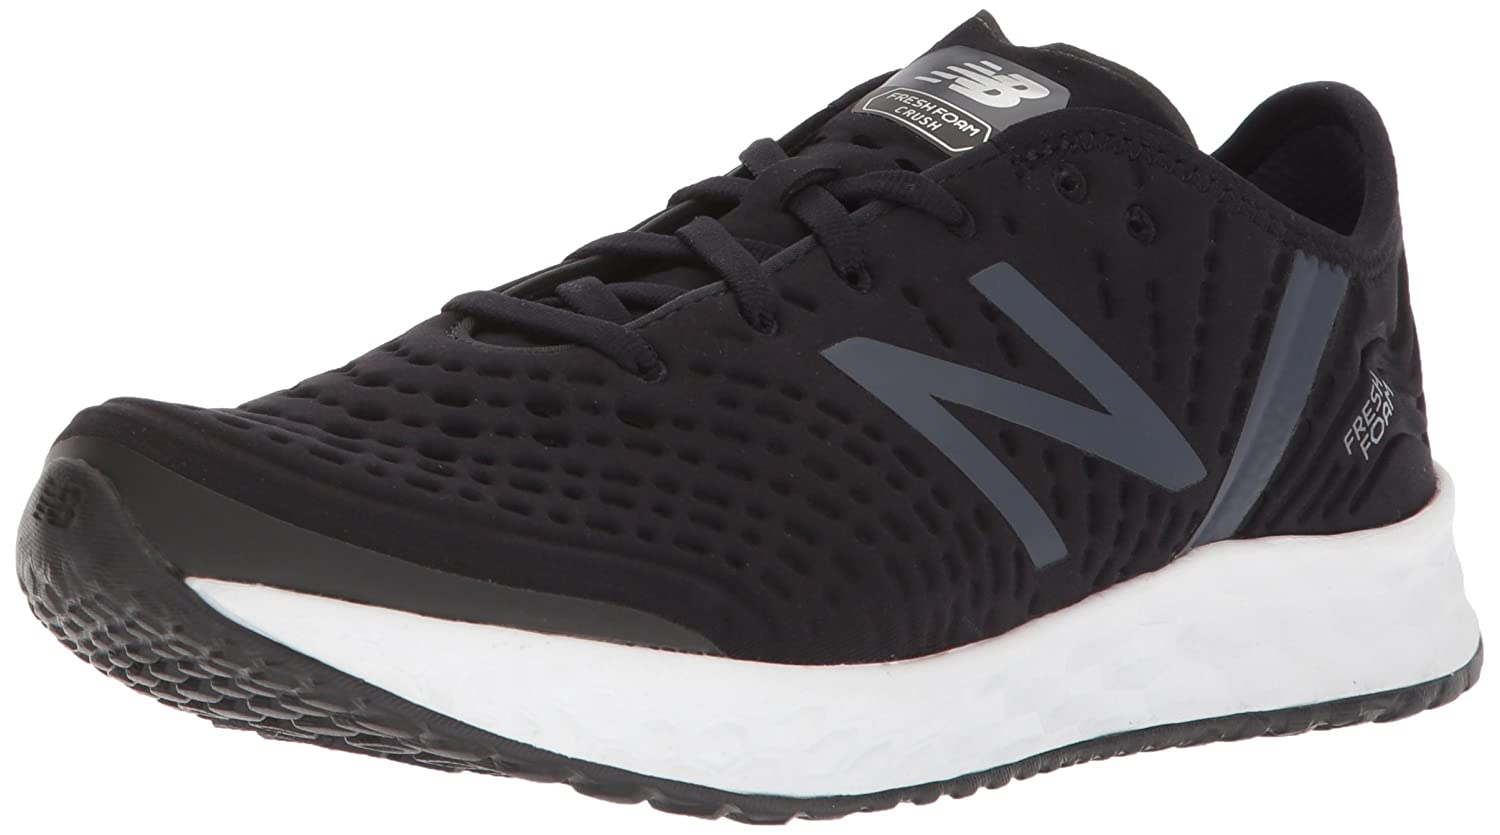 New Balance Women's Fresh Foam Crush V1 Cross Trainer B06XSCRV1Z 11 D US|Black